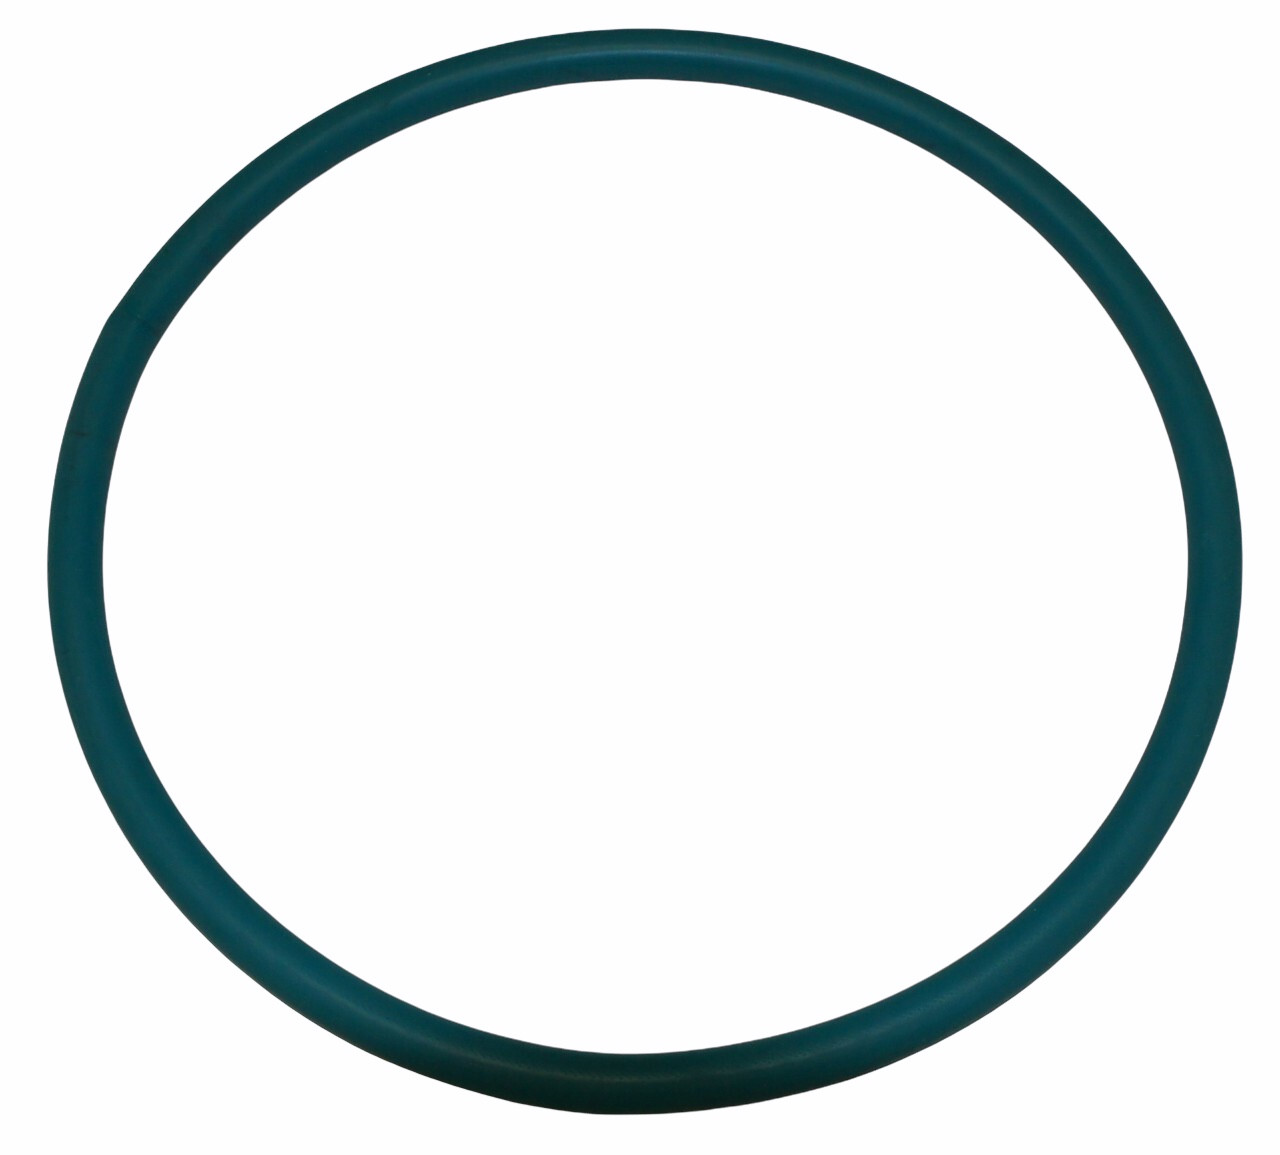 Talsa H-242 - Replacement Lid Gasket (Green) - 6230, 6231, 6093,6232, & 6240